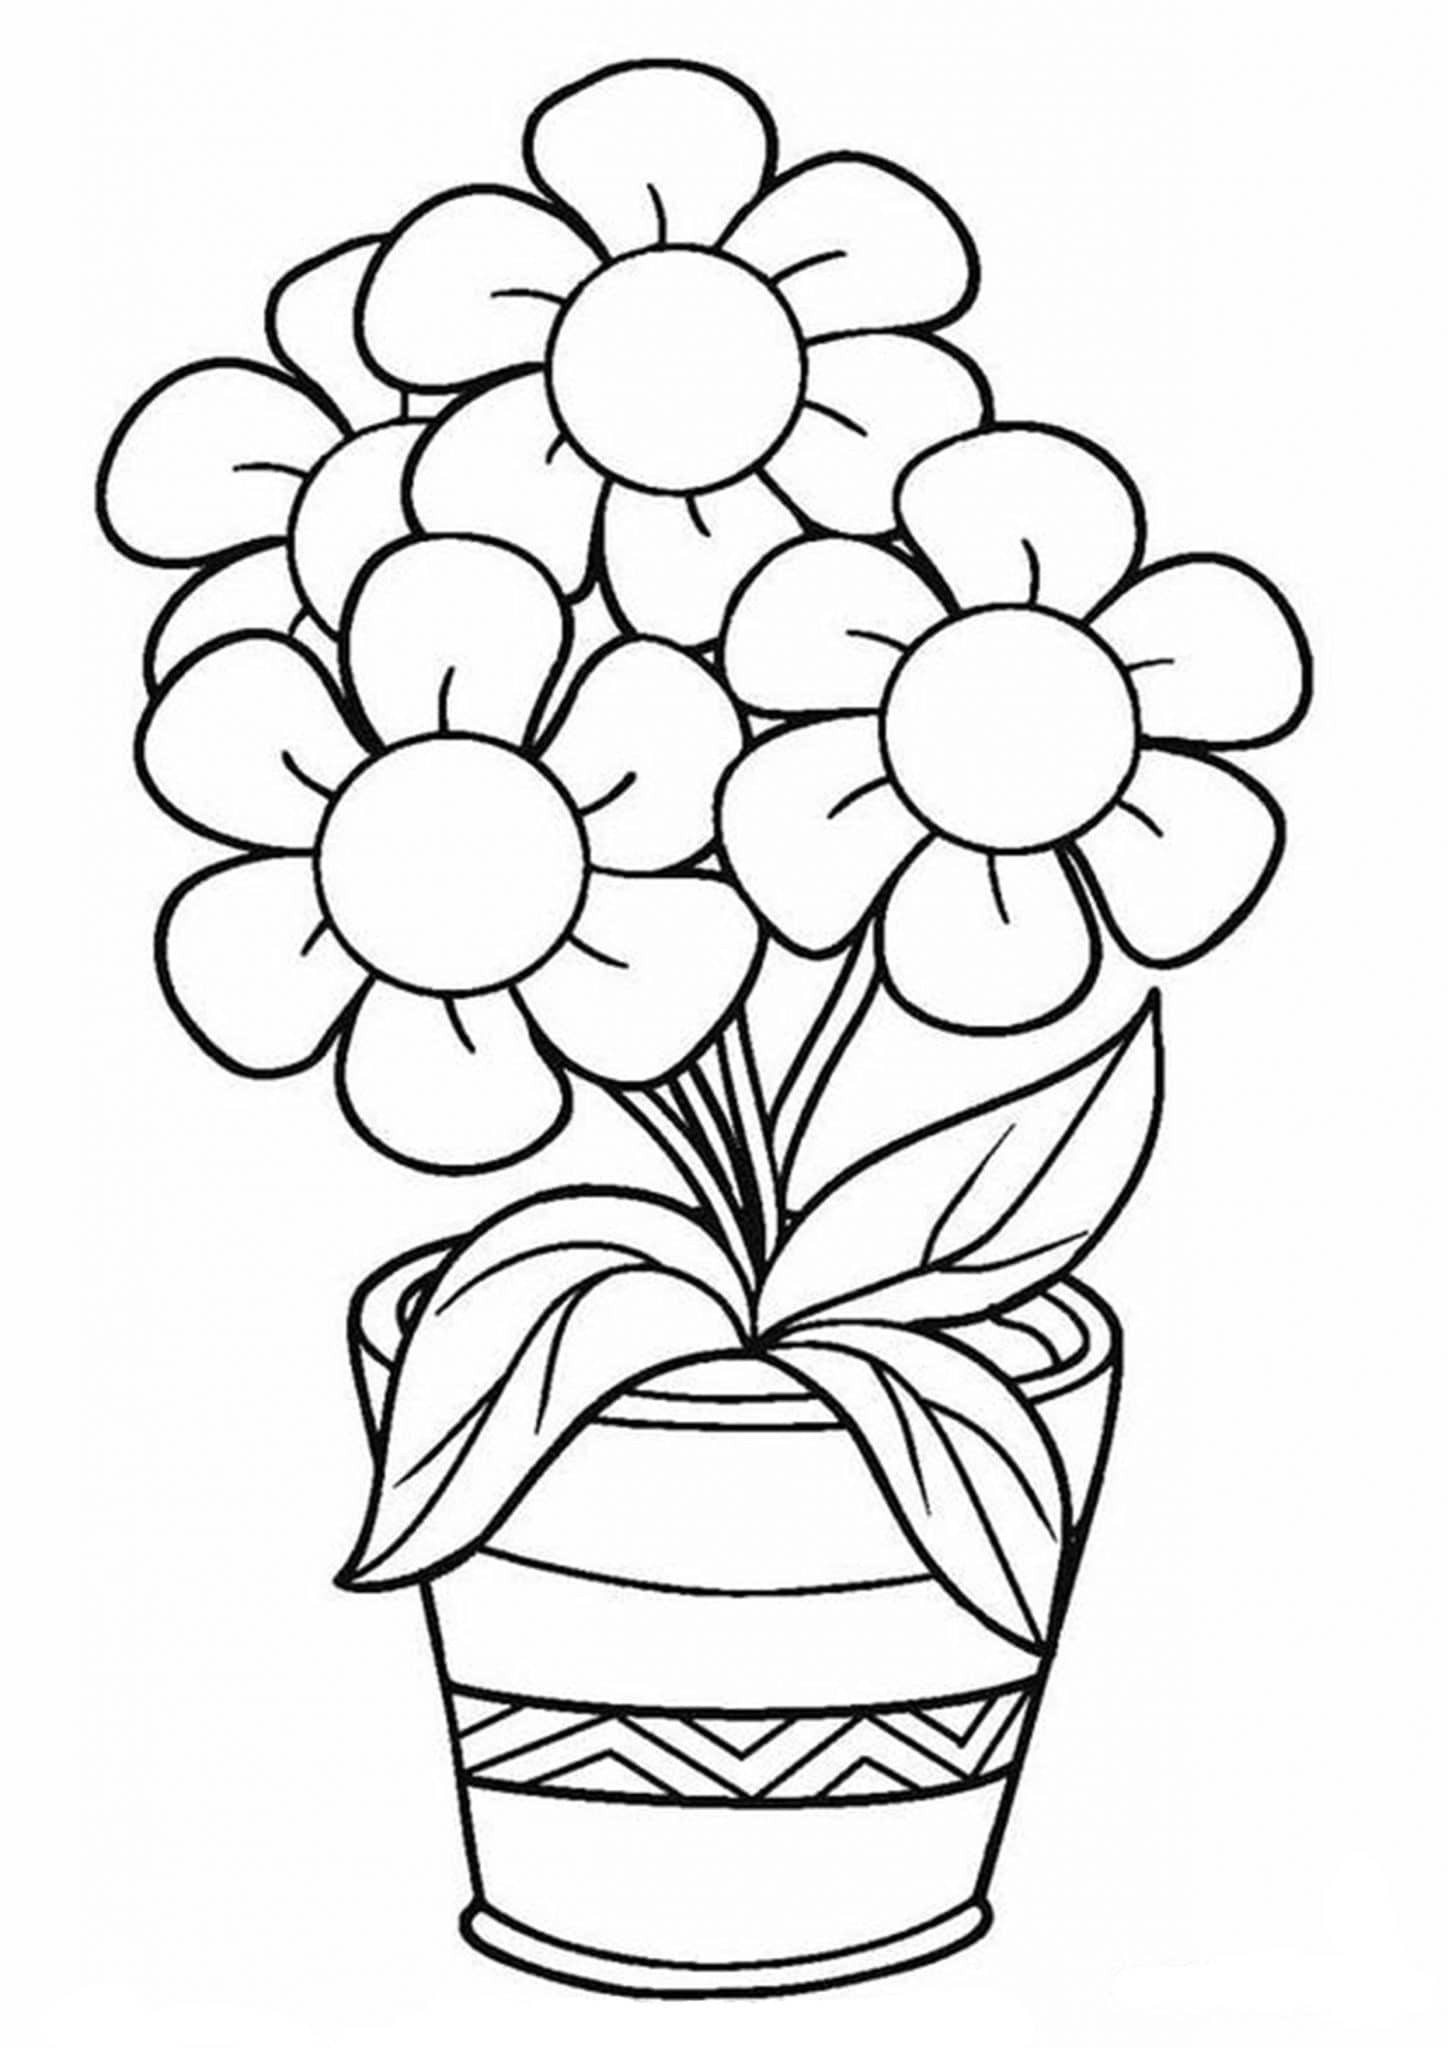 coloring pages about flowers free easy to print flower coloring pages tulamama coloring pages flowers about